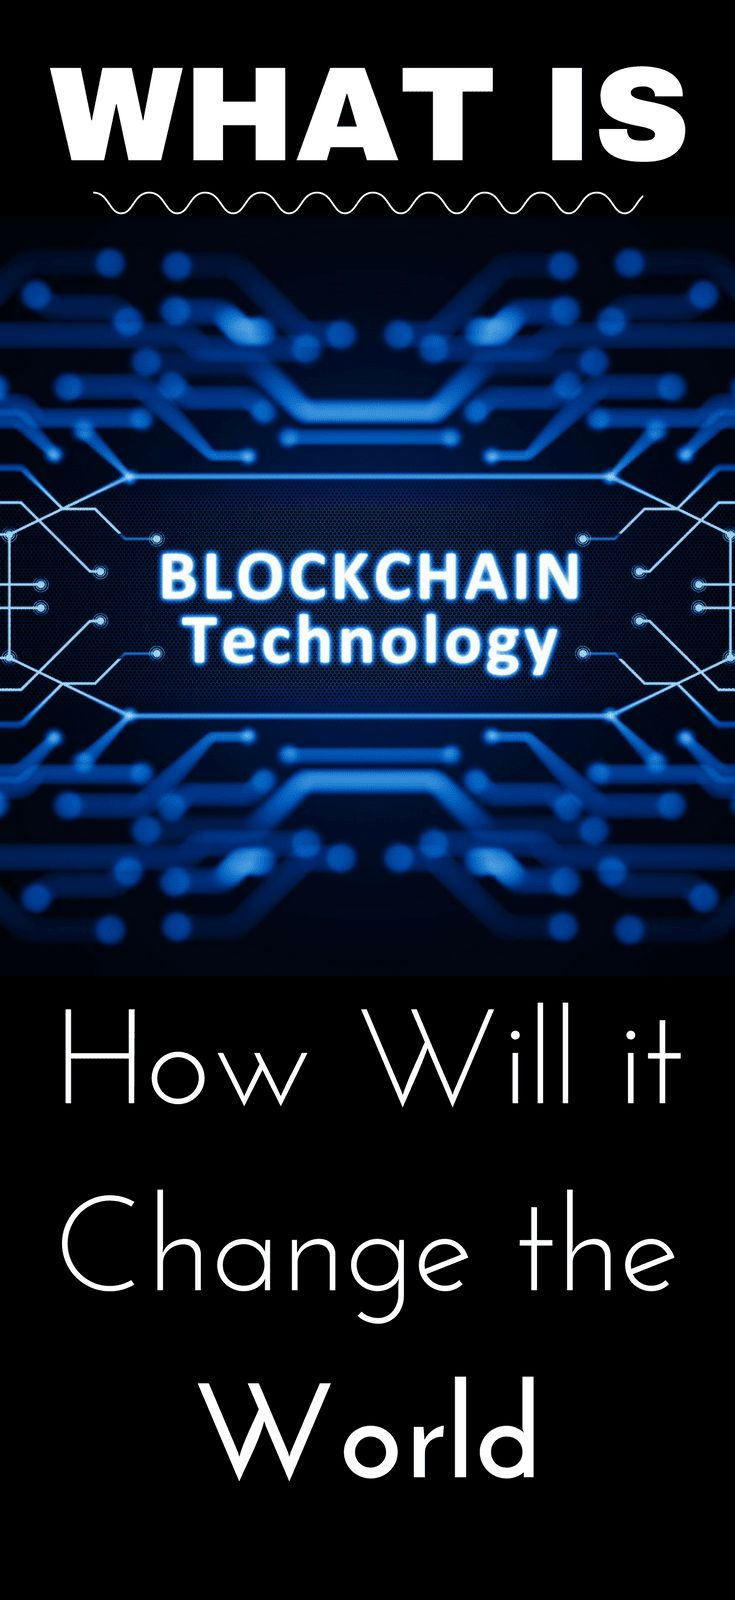 What Is Blockchain Technology And How Will It Change The World? 2